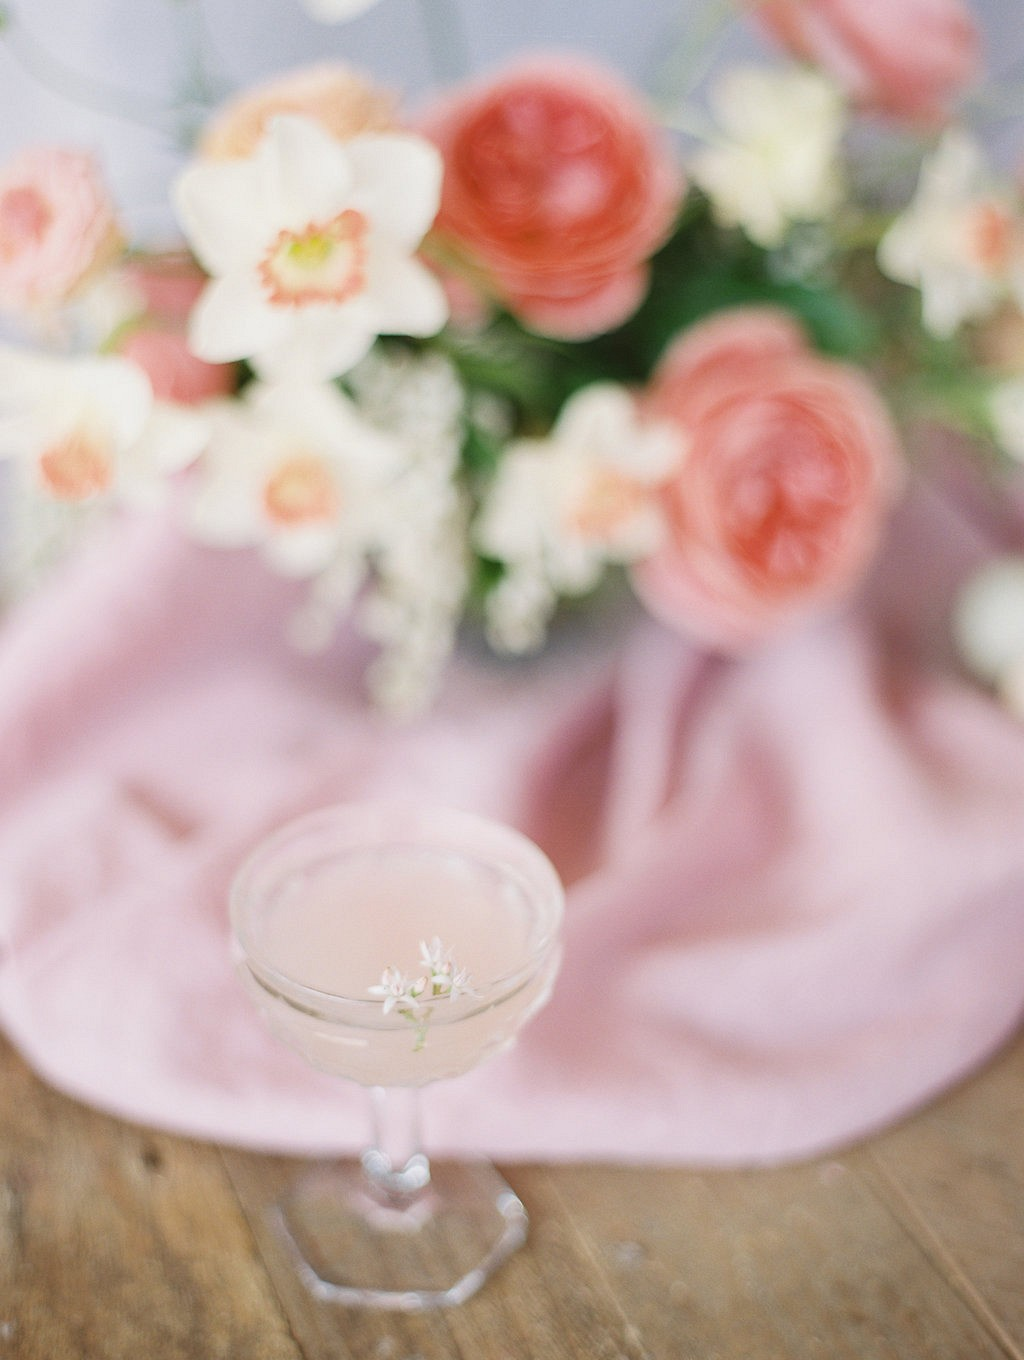 Summer Cocktails for a Signature Drink | Wedding Sparrow